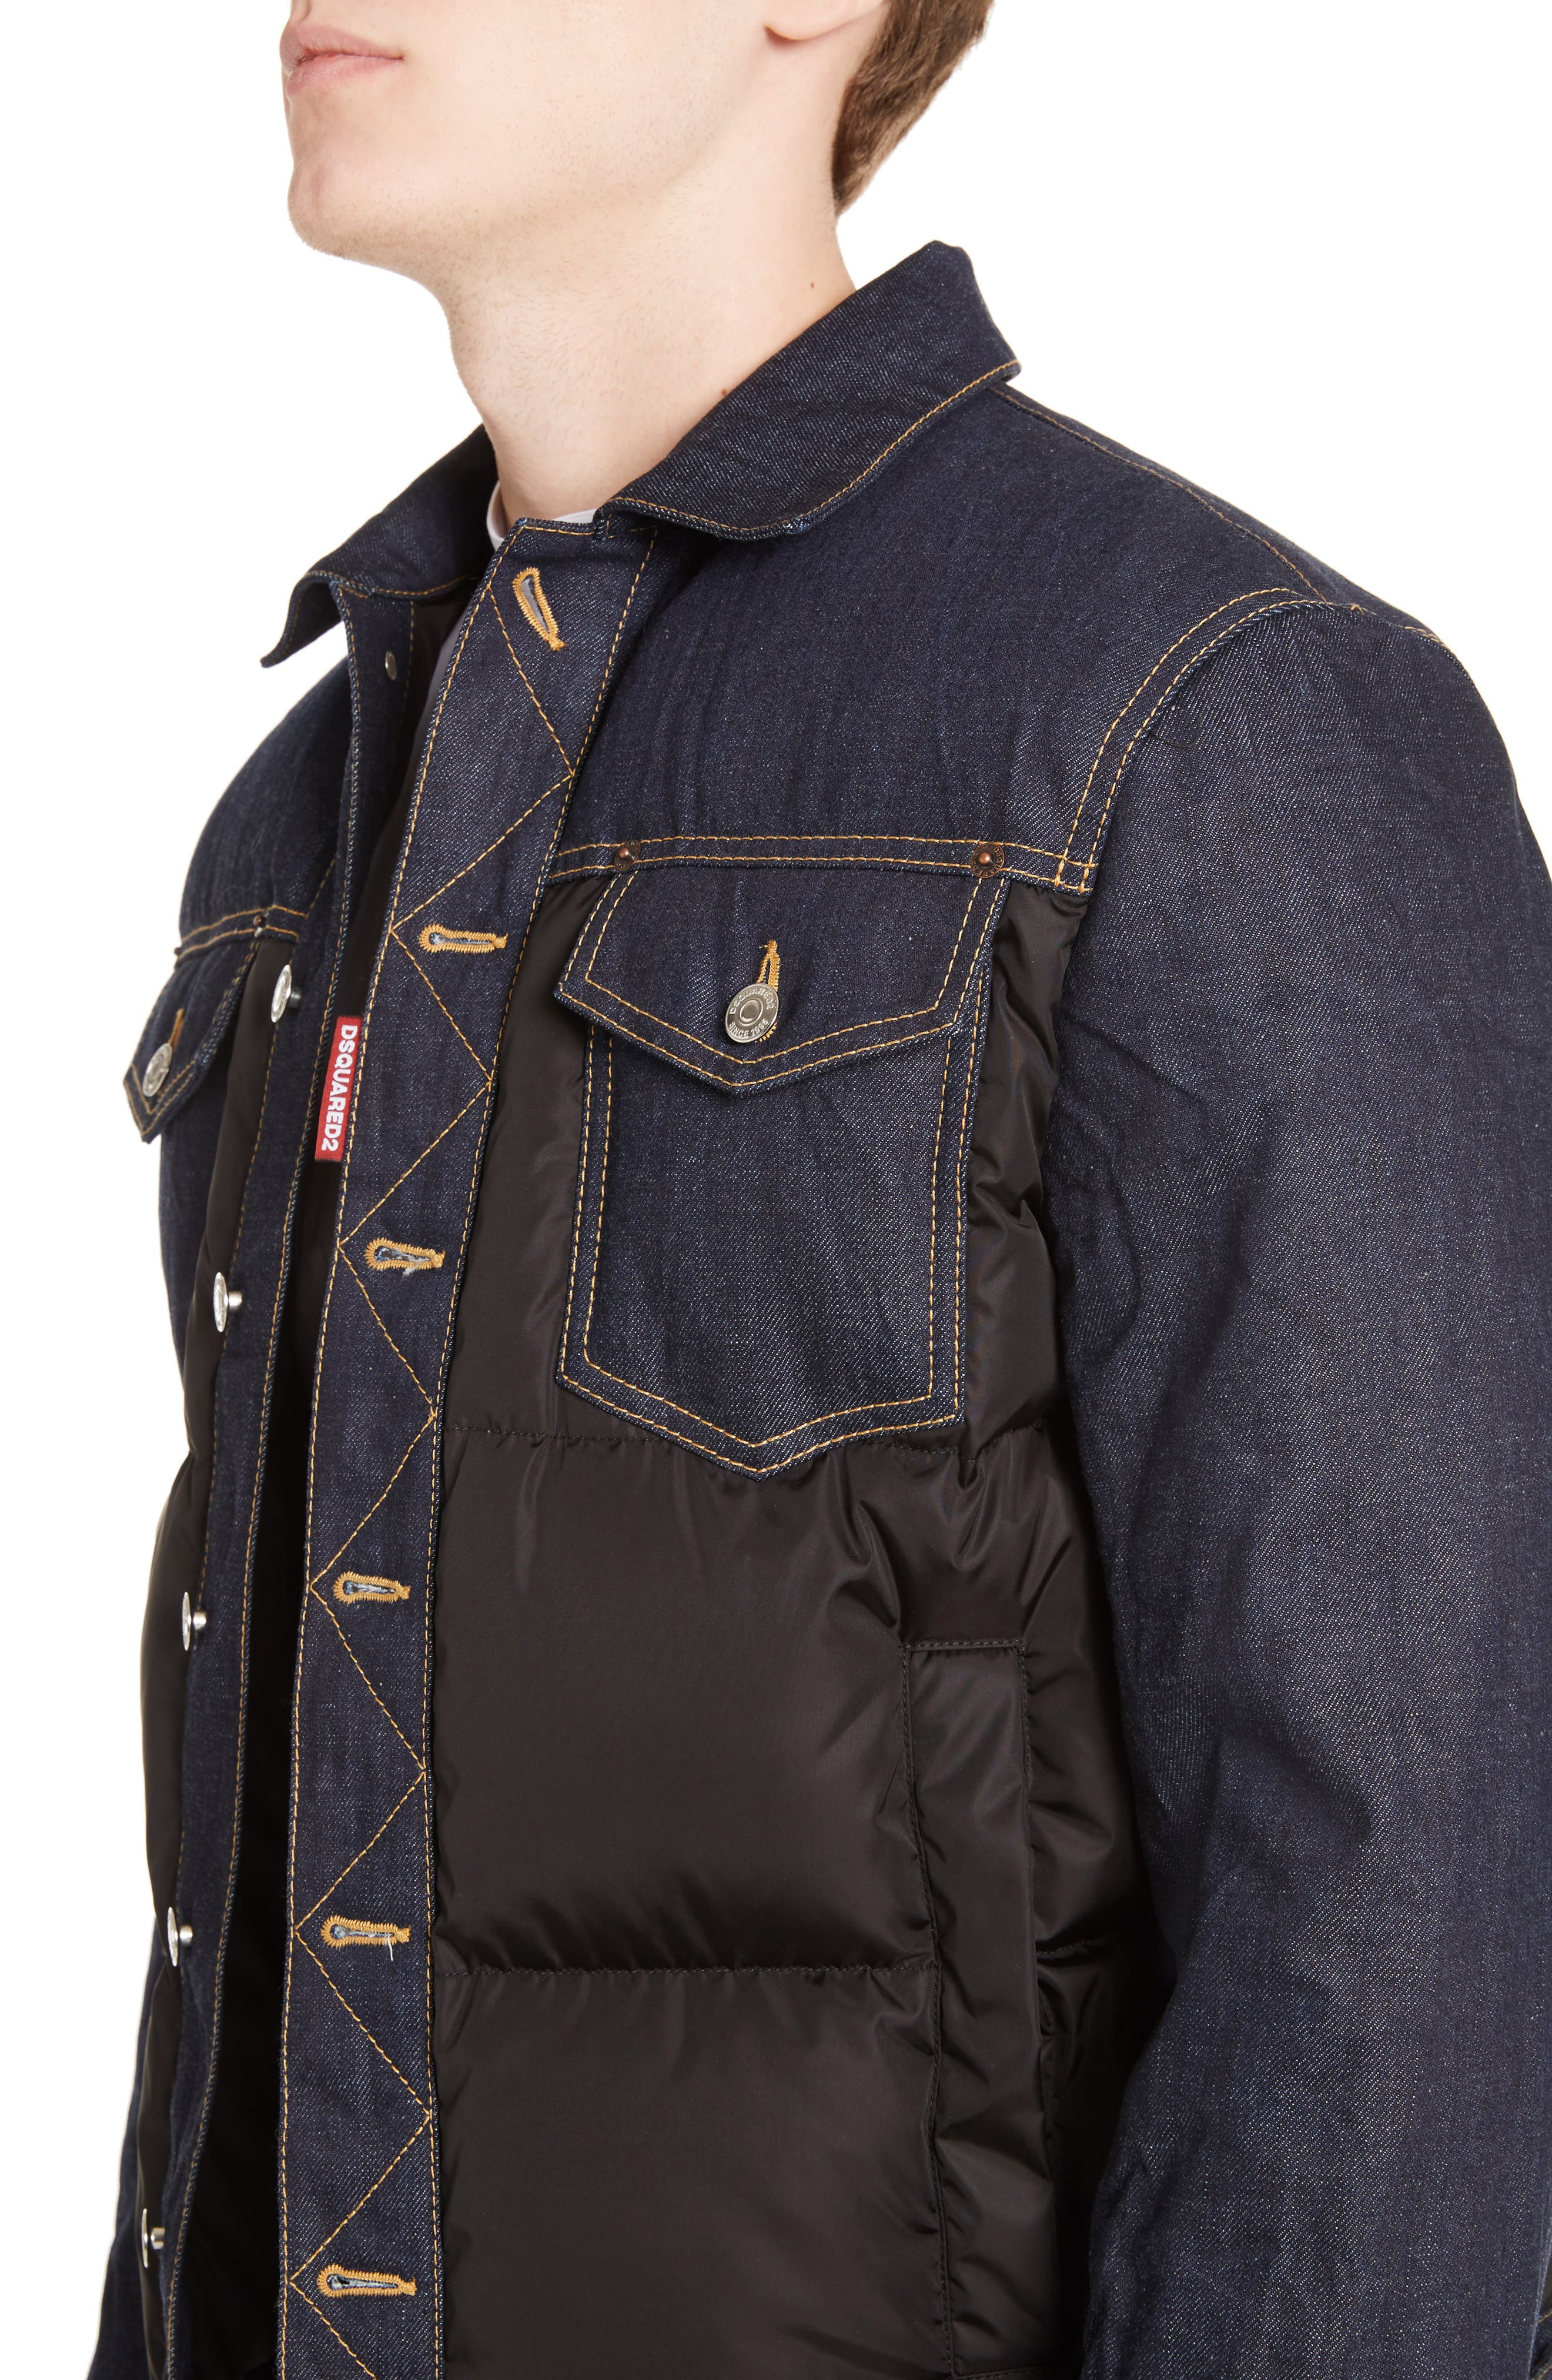 Mixed Media Quilted Denim Jacket,                             Alternate thumbnail 4, color,                             008